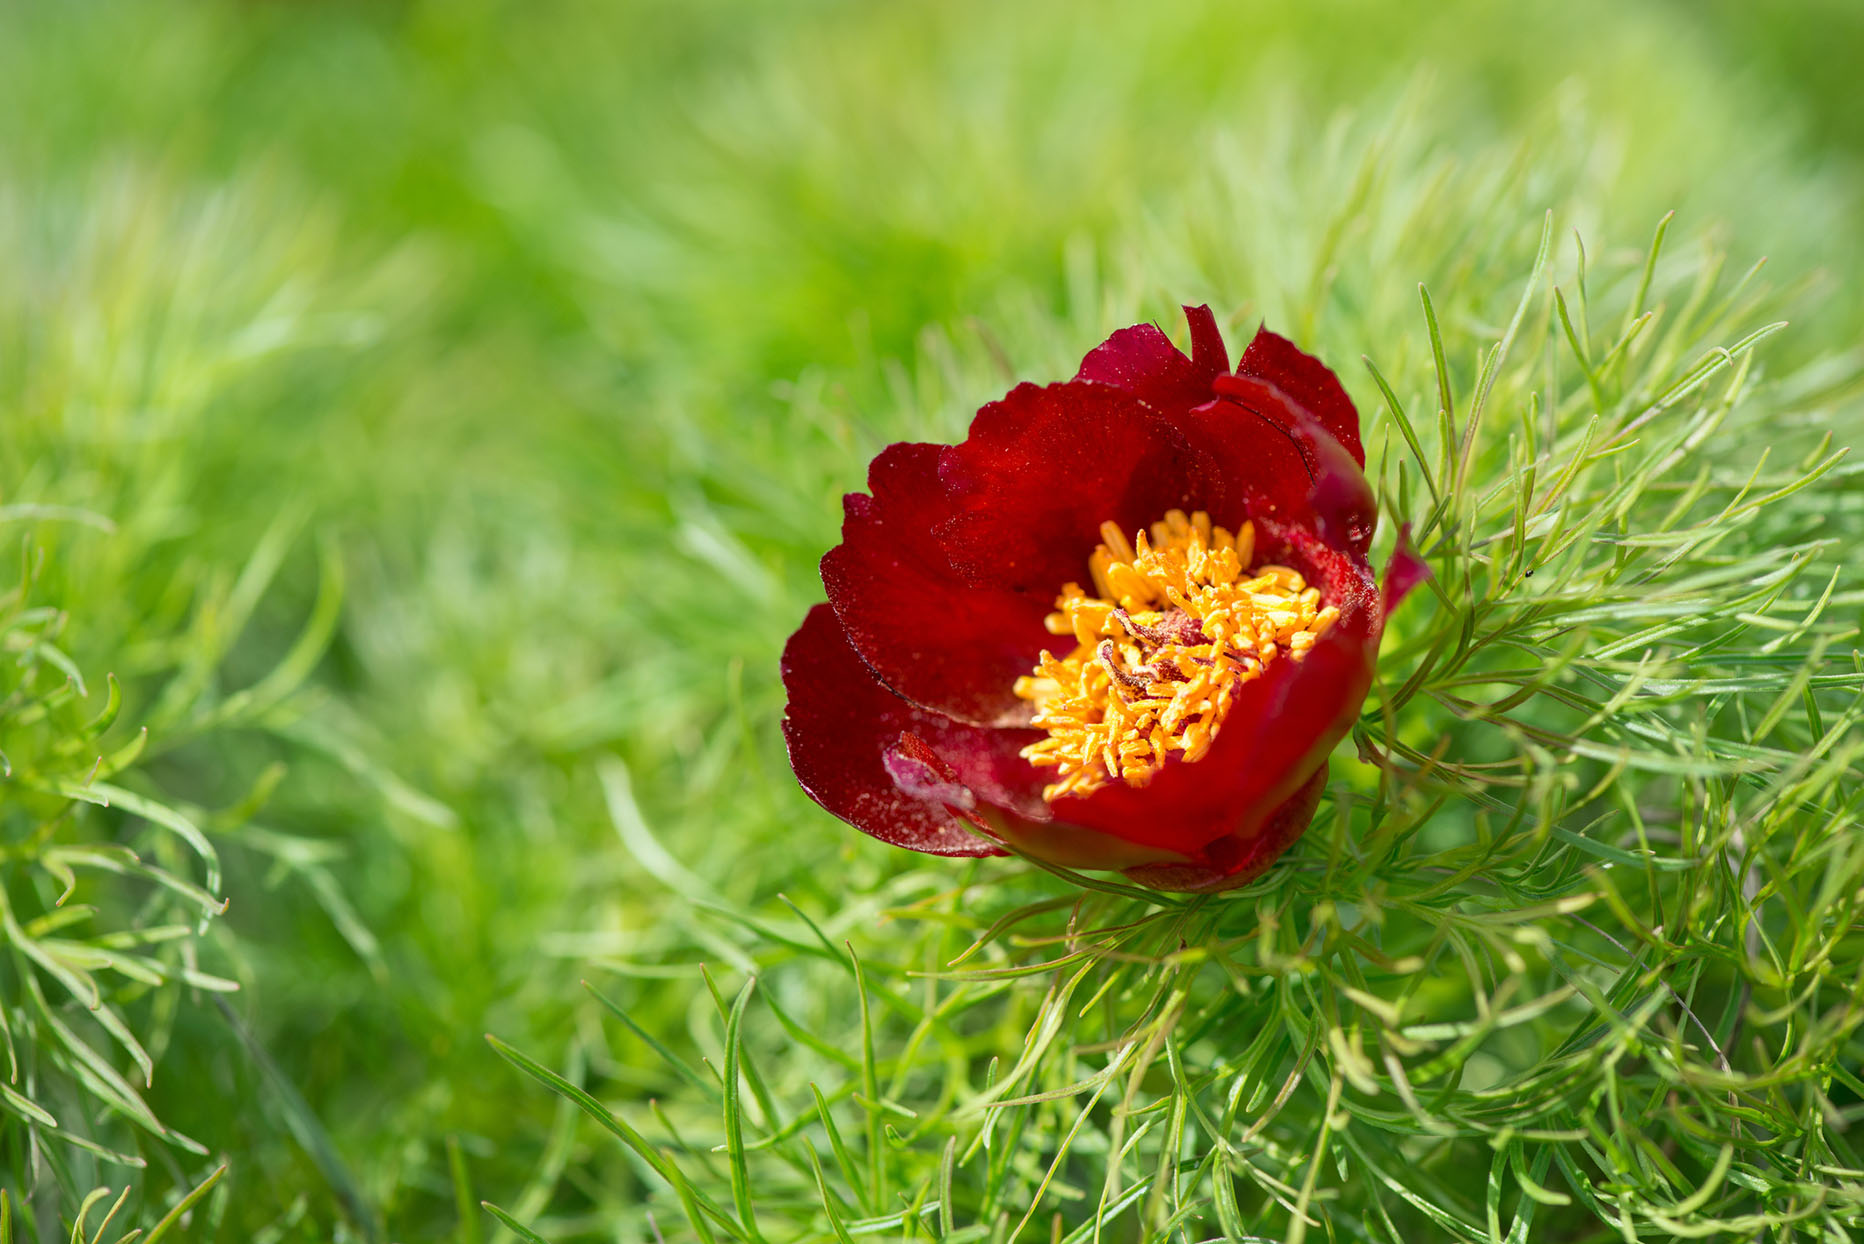 One red bloom with yellow stamen in center on green foliage that looks like asparagus fern, fernleaf peony